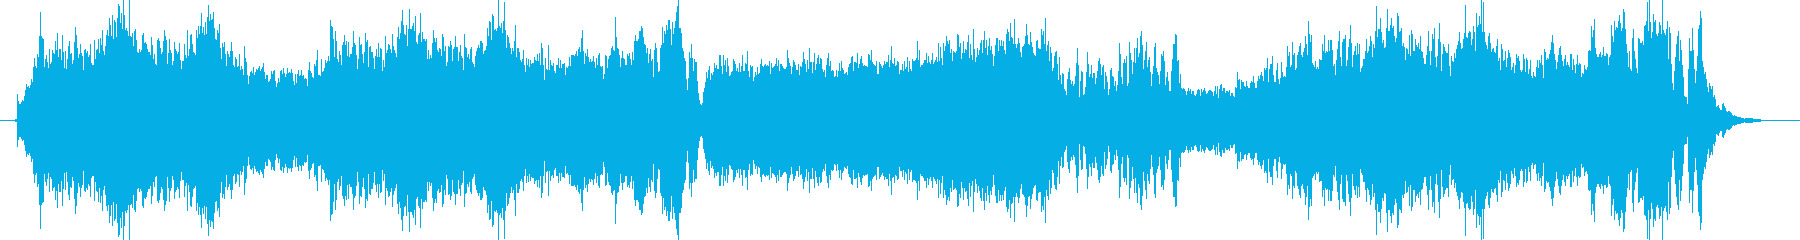 Ornate orchestra, fanfare's reproduced waveform